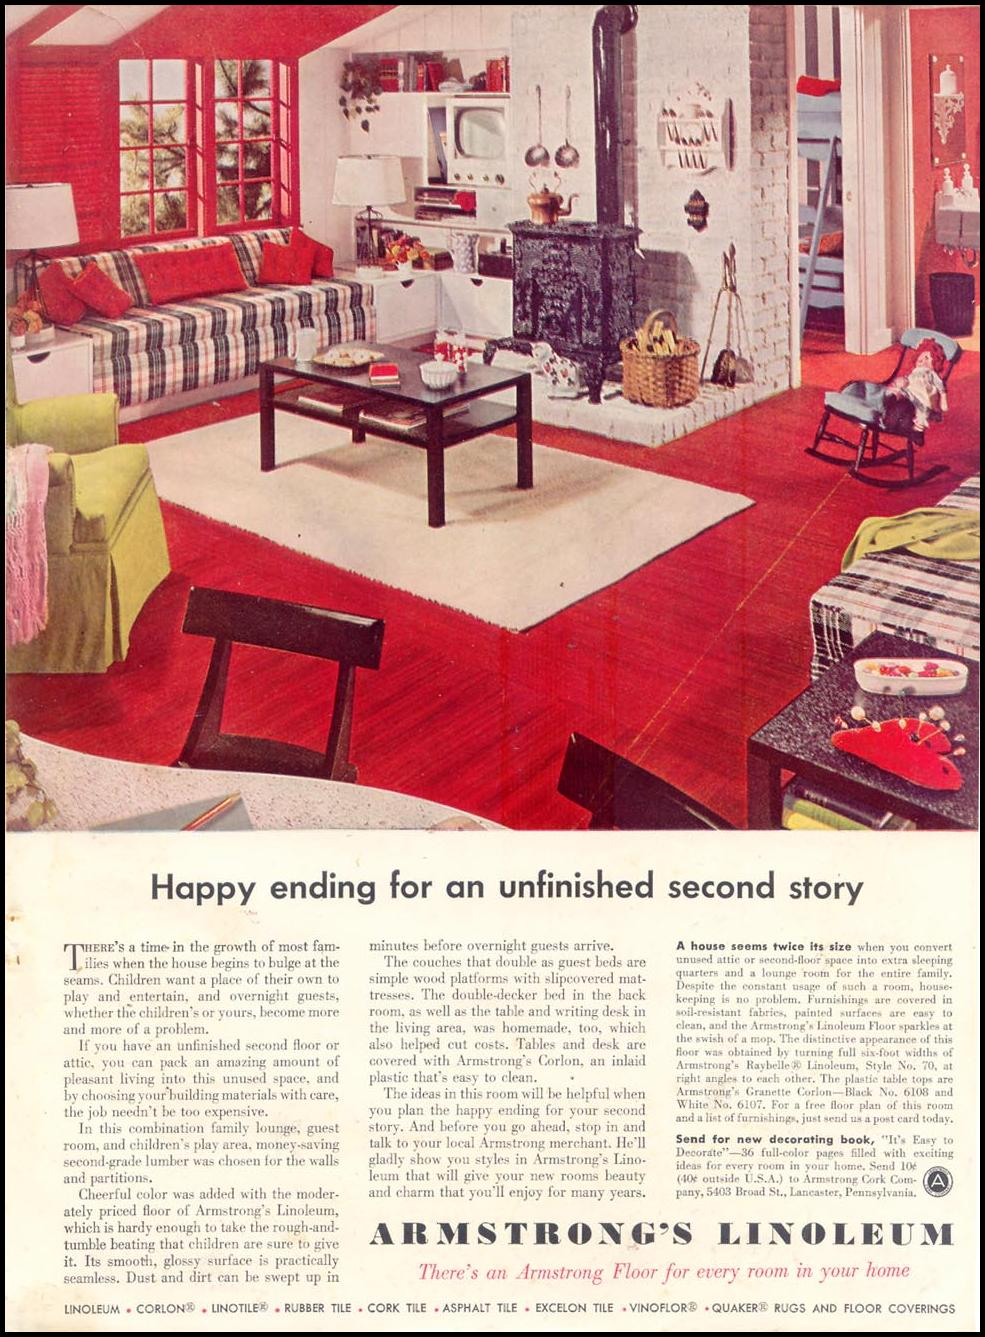 ARMSTRONG LINOLEUM FLOORS WOMAN'S DAY 03/01/1954 INSIDE BACK